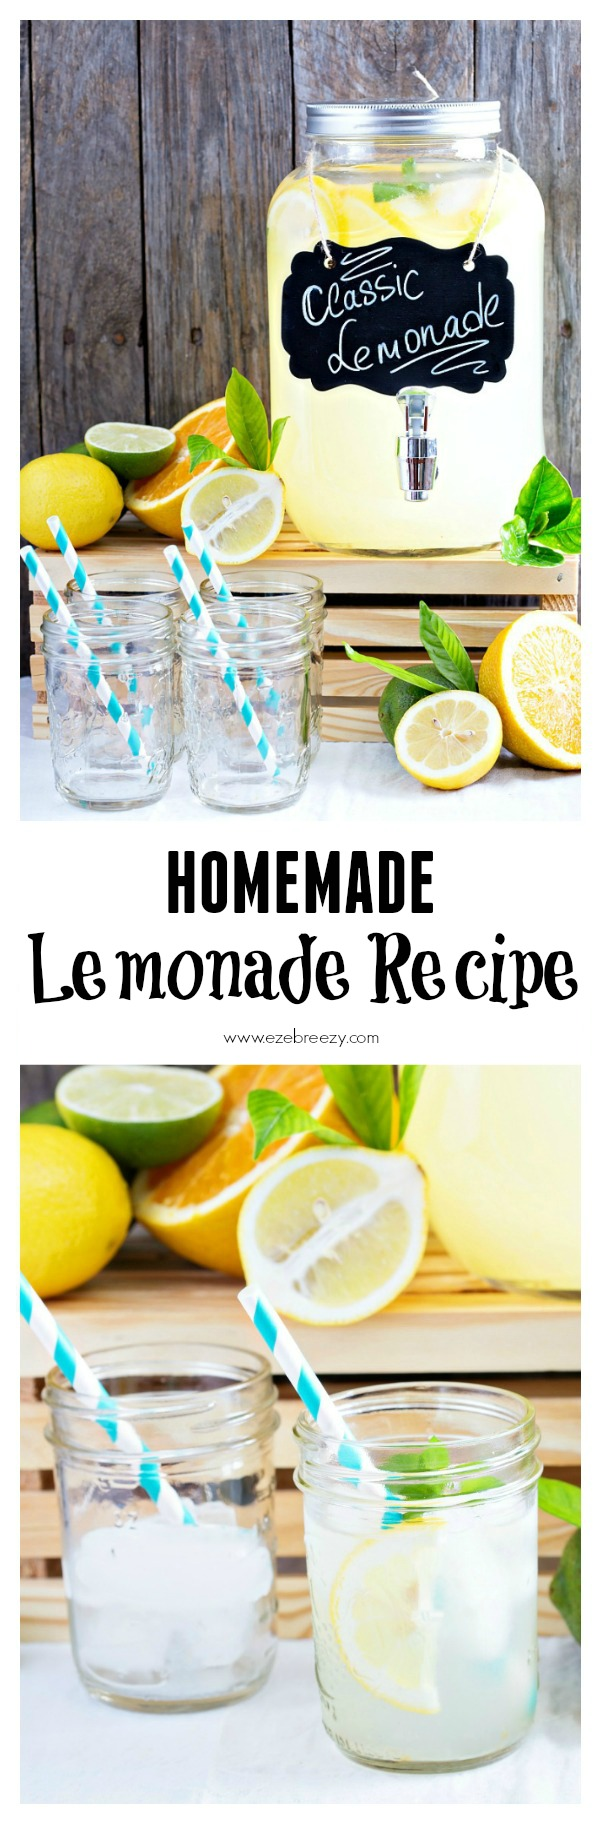 EASY 3-INGREDIENT Homemade Lemonade Recipe...This cool, refreshing lemonade is the ultimate summer drink for the whole family to enjoy on a hot days of summer.